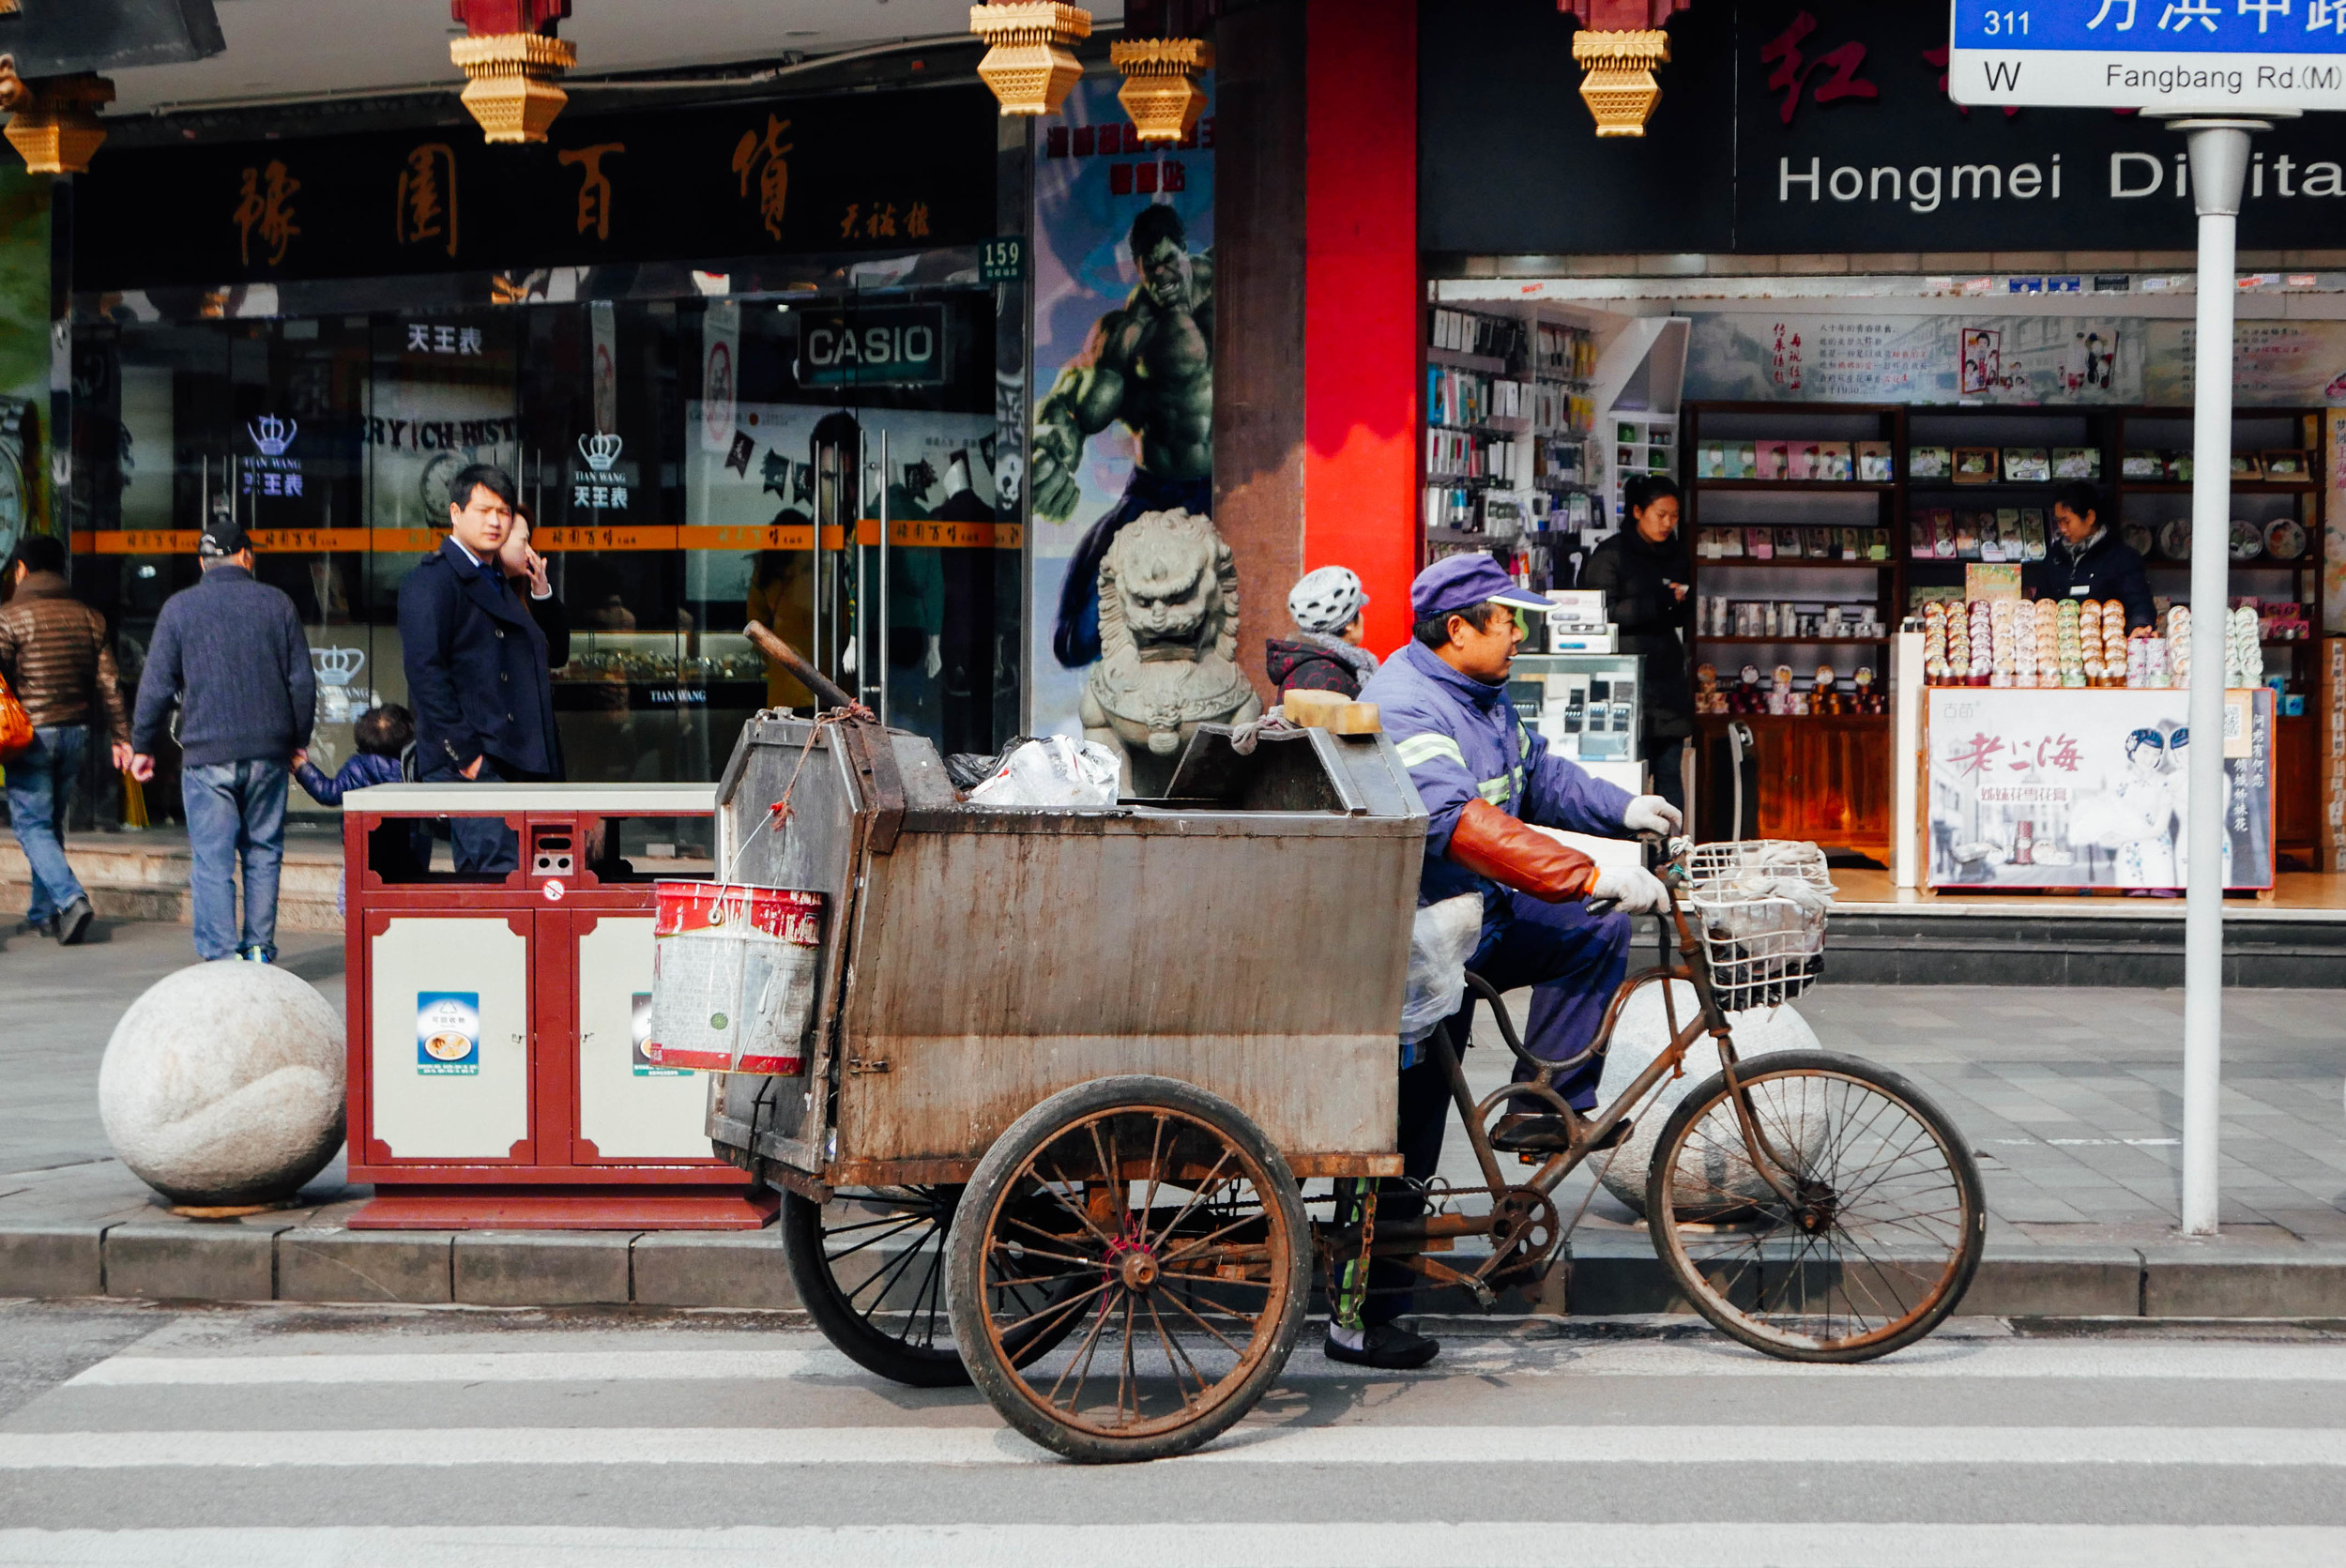 Shanghai's garbage collectors are - of course - on bikes.